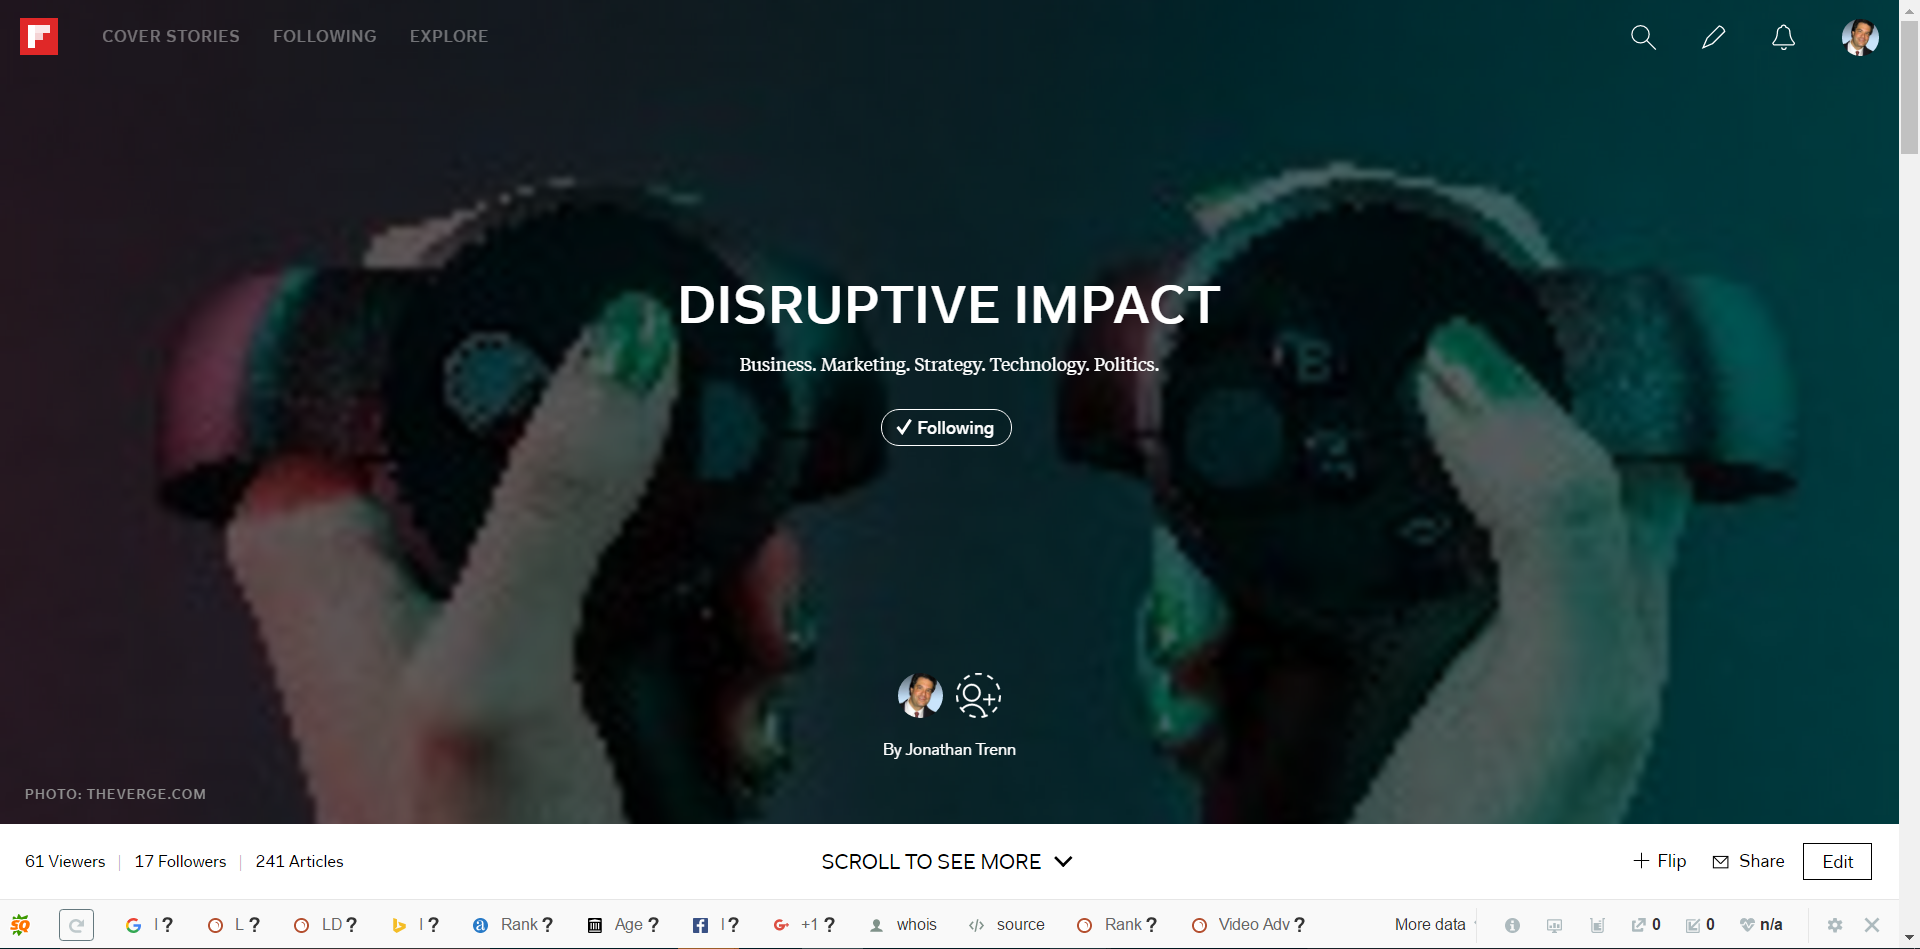 Disruptive Impact screen grab